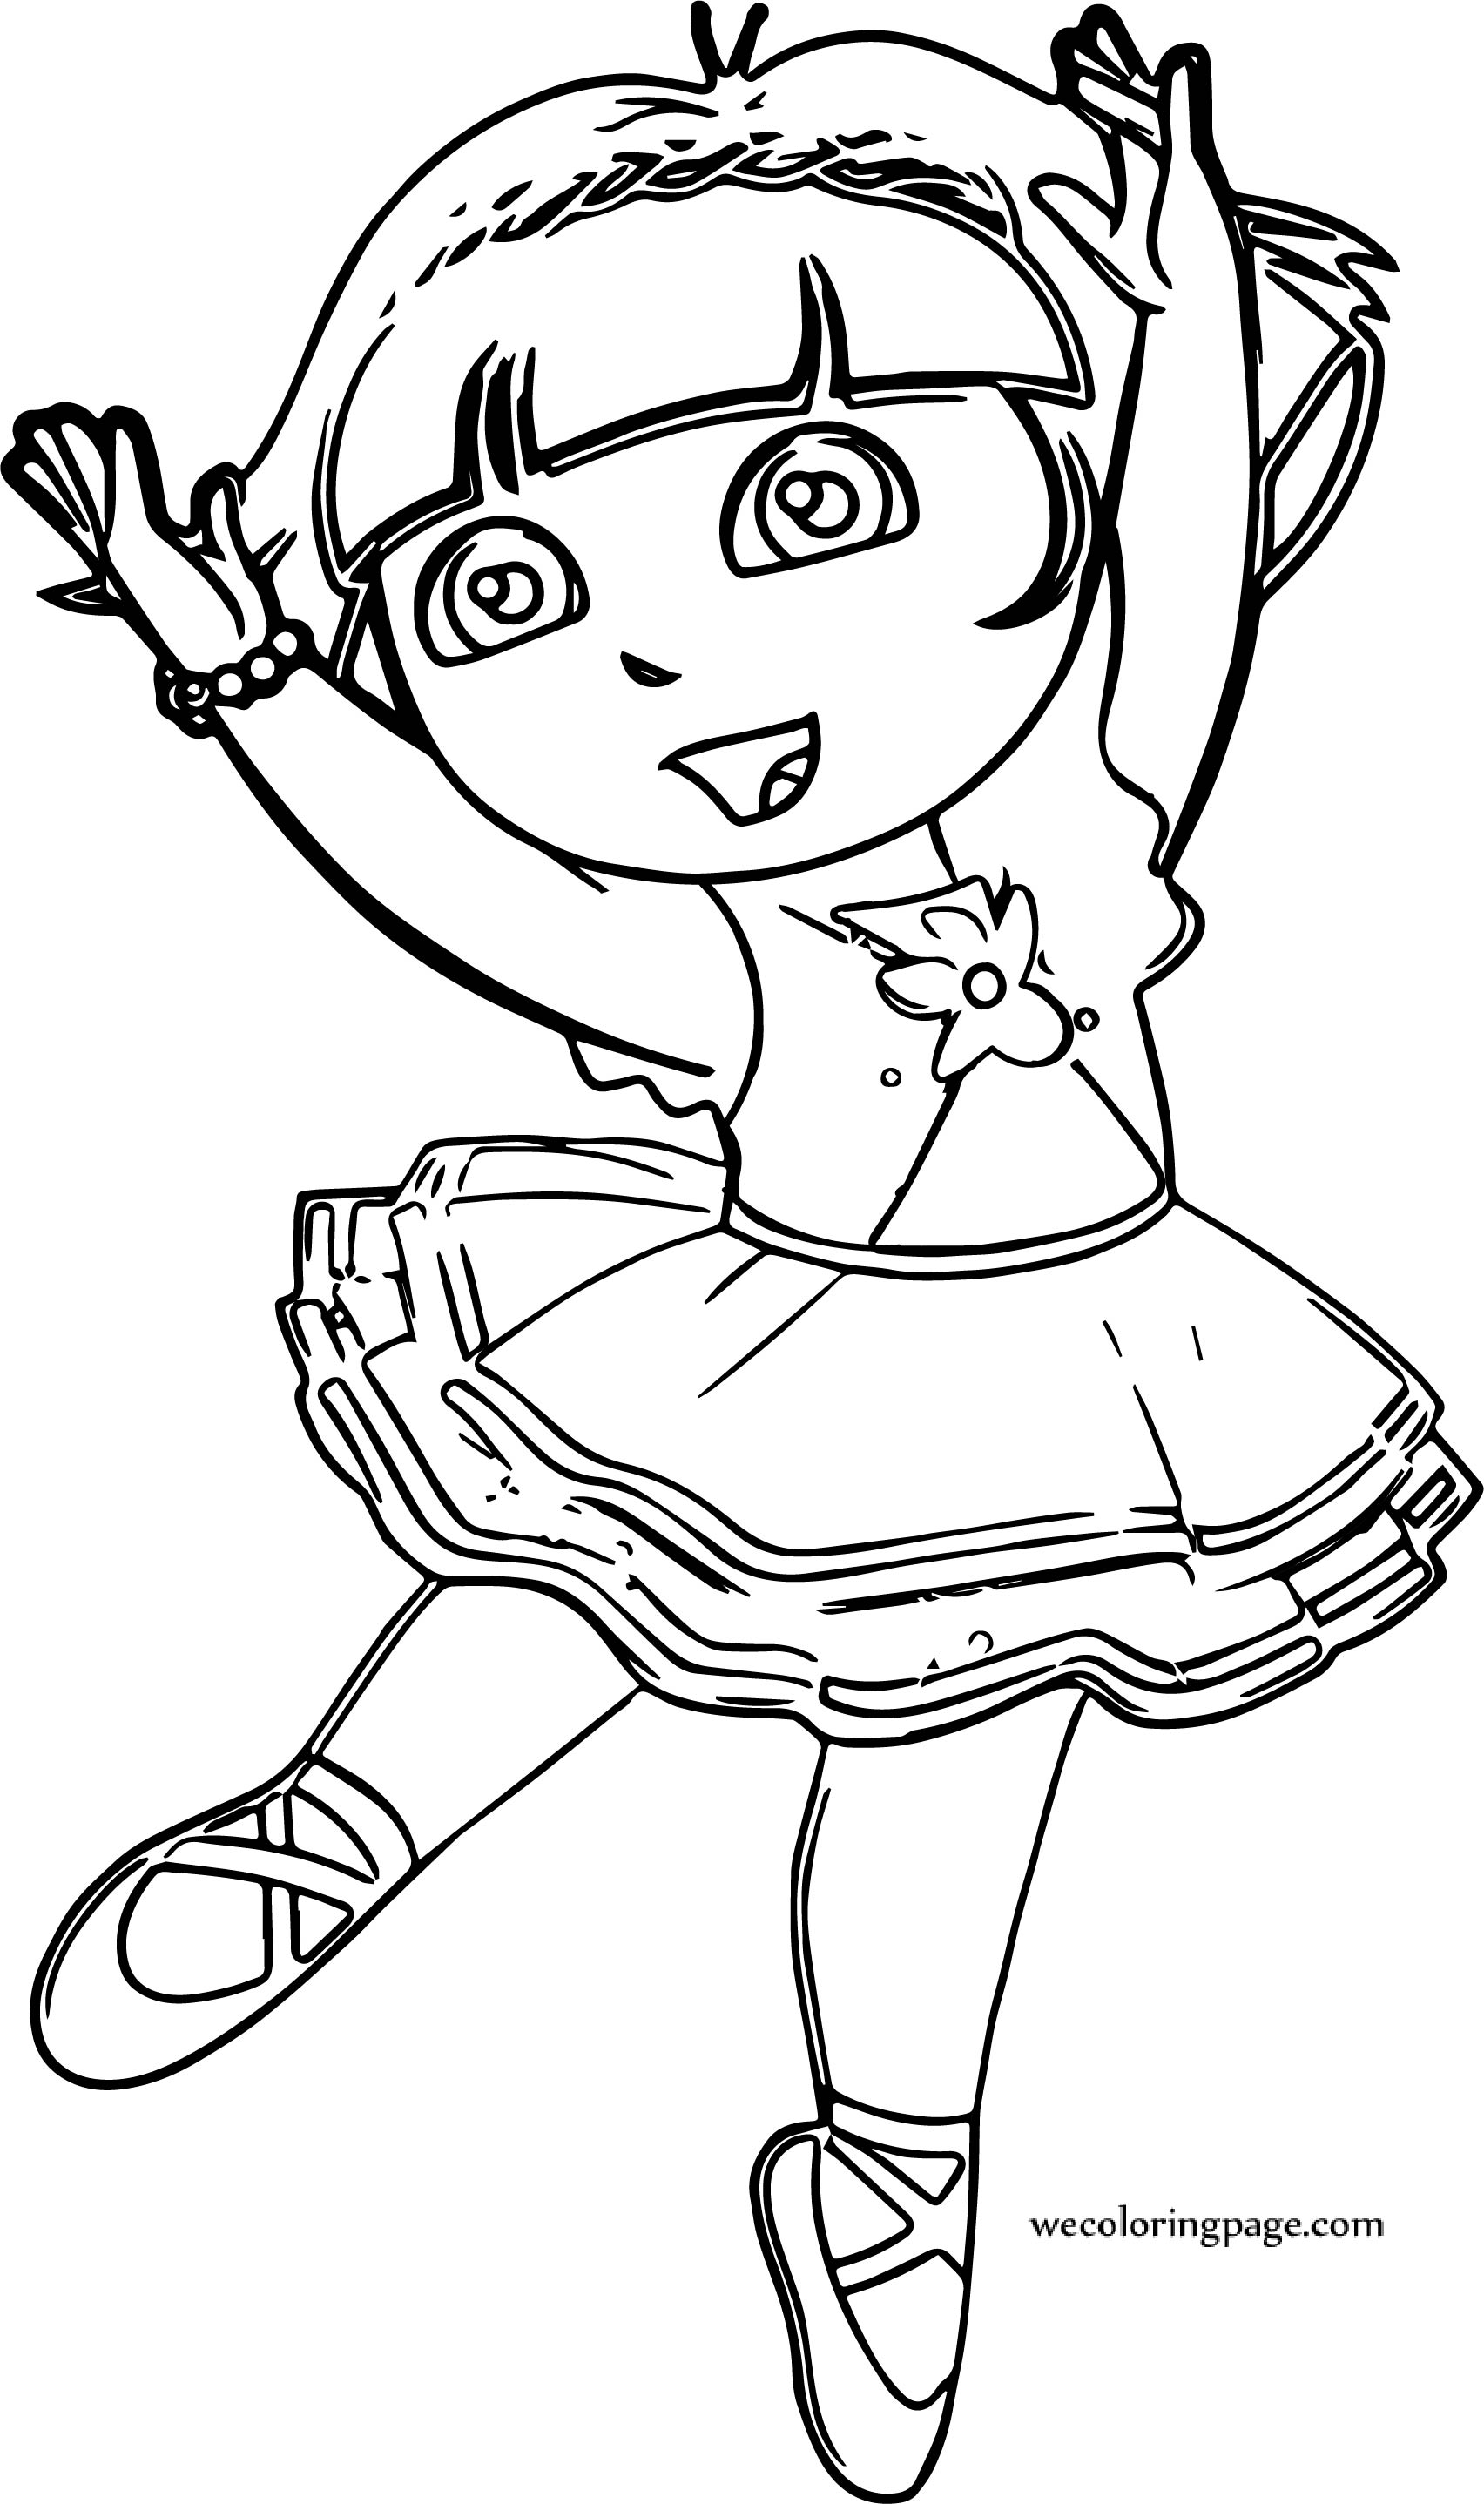 It's just a photo of Crafty Printable Ballerina Coloring Pages